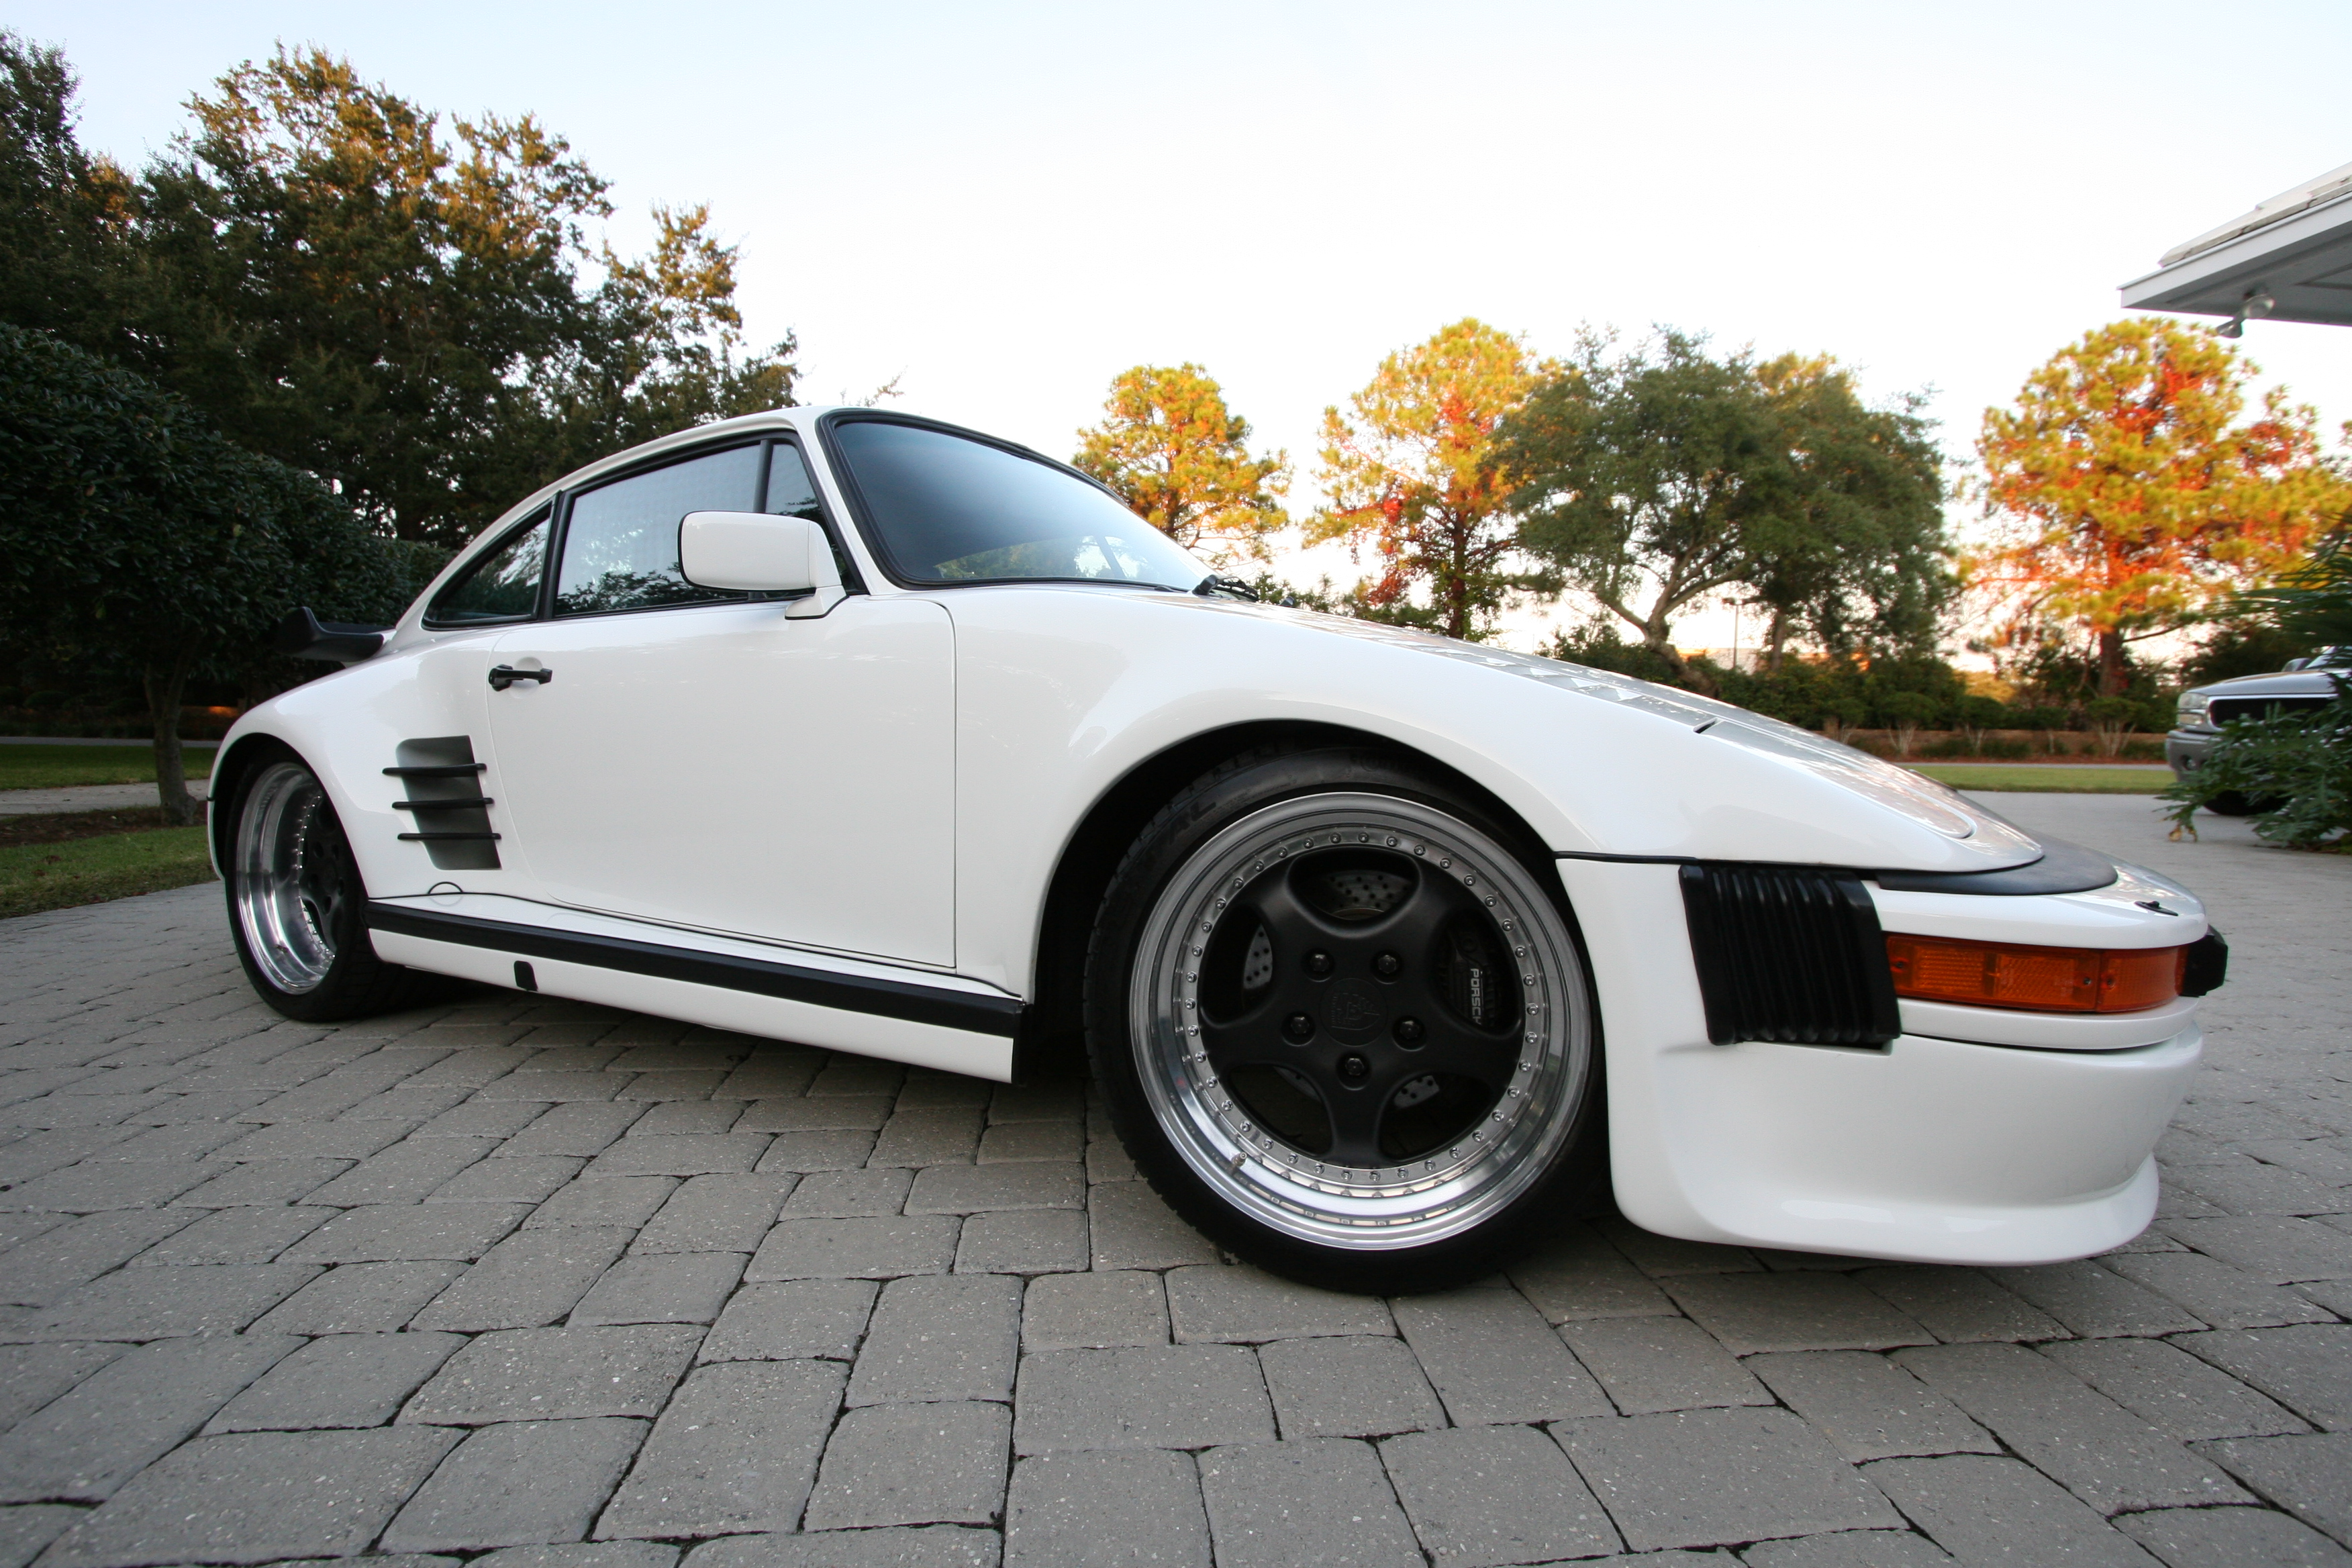 1985 Porsche 930 Turbo Modified Slantnose Hollywood